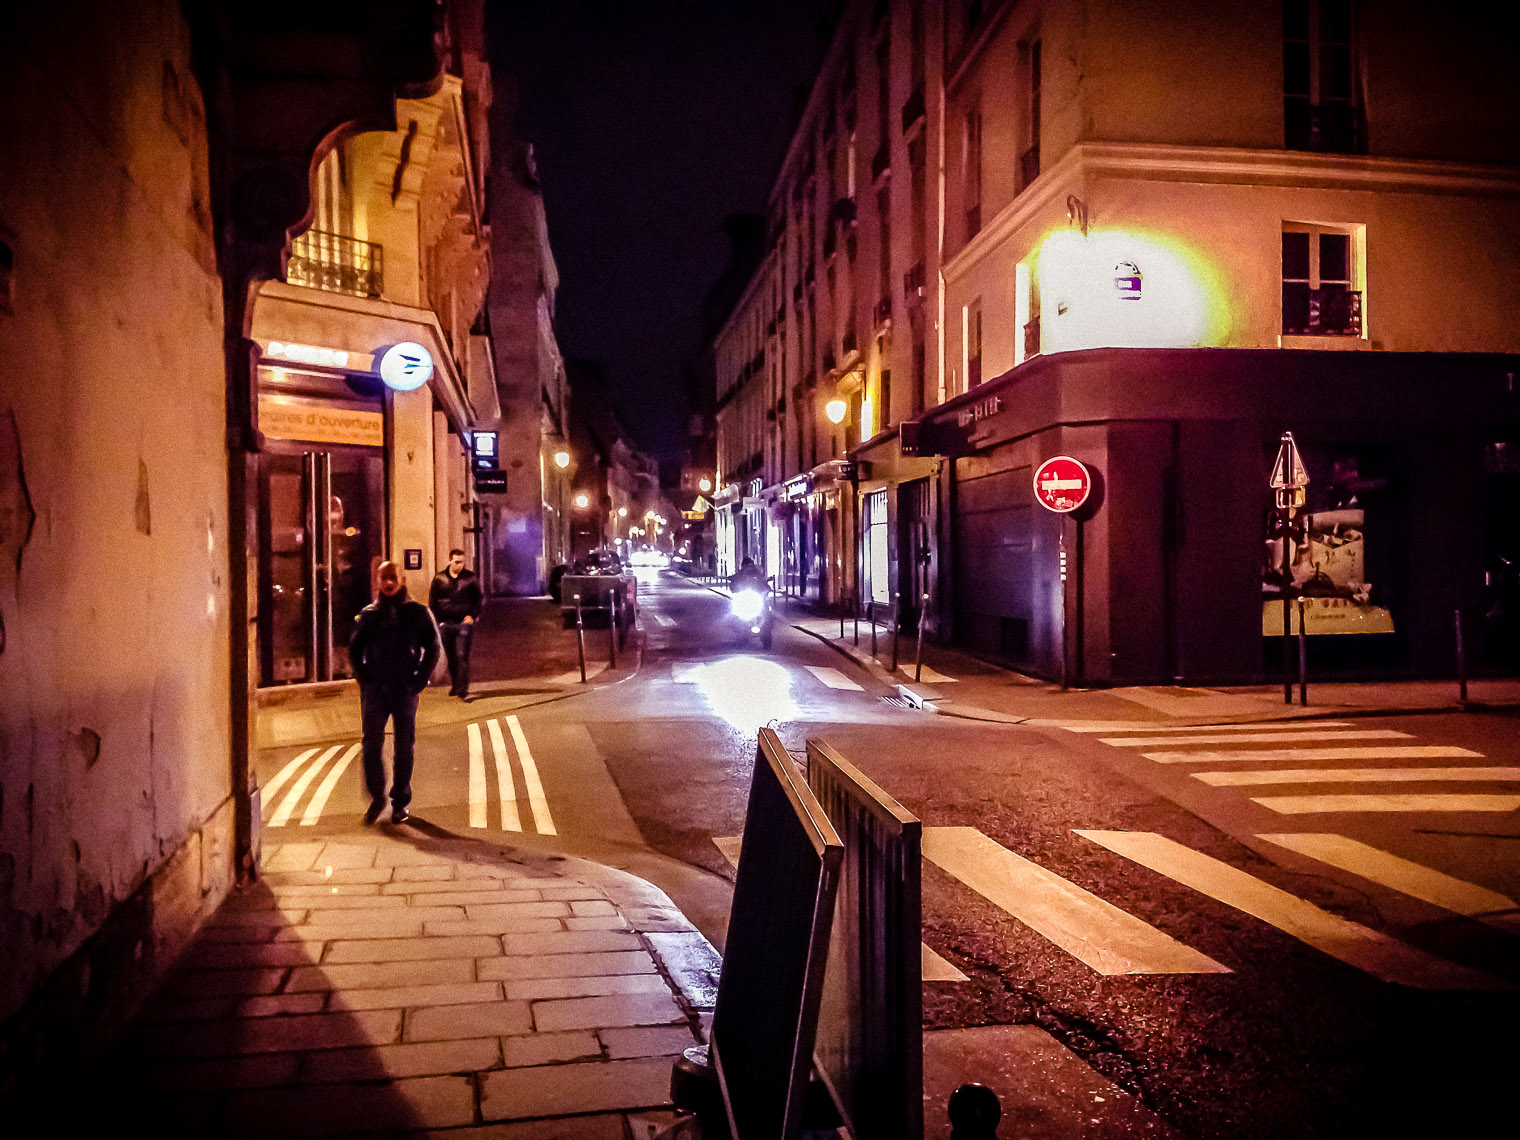 010_Paris by iPhone_Le Marais.jpg